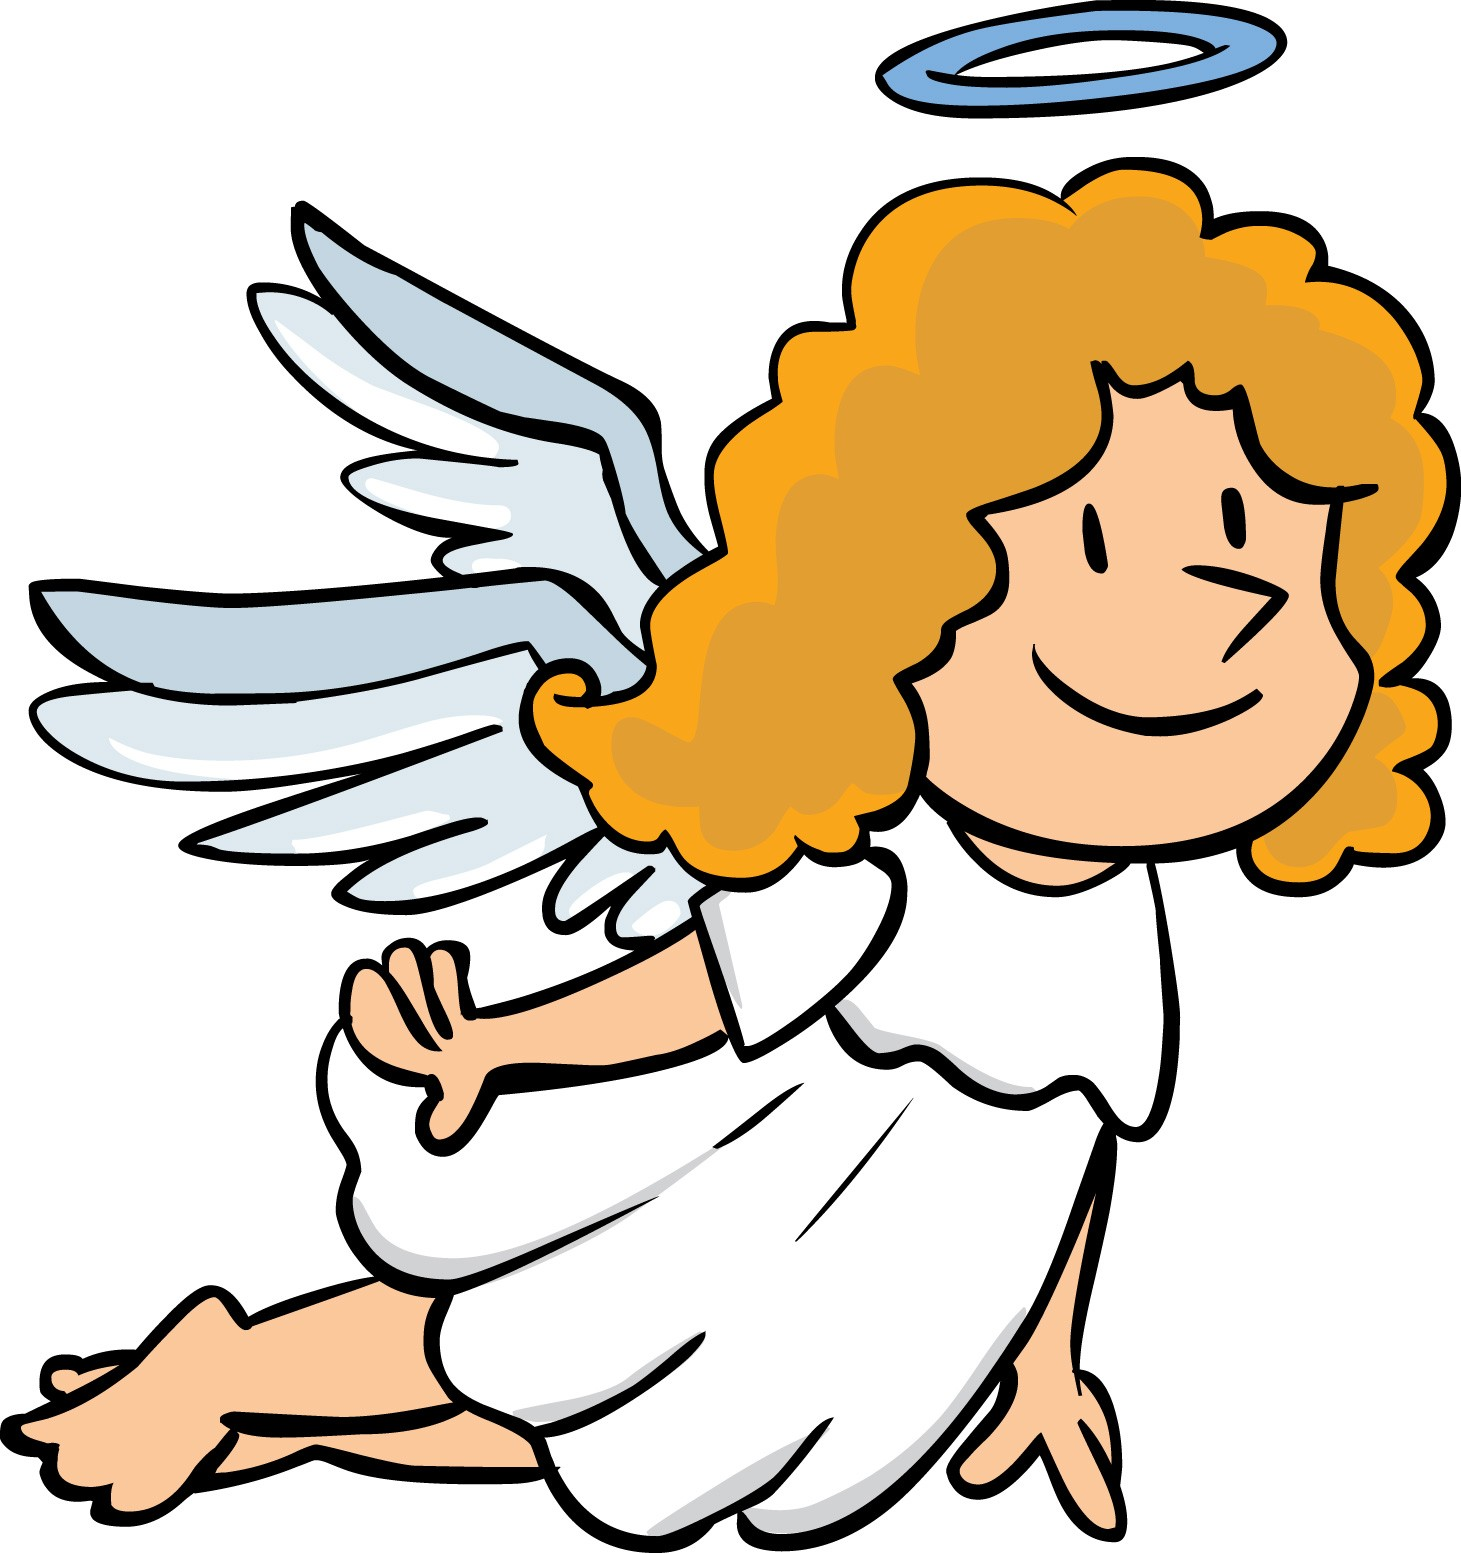 hight resolution of 1461x1553 new free cartoon angel cliparts download free clip art free clip